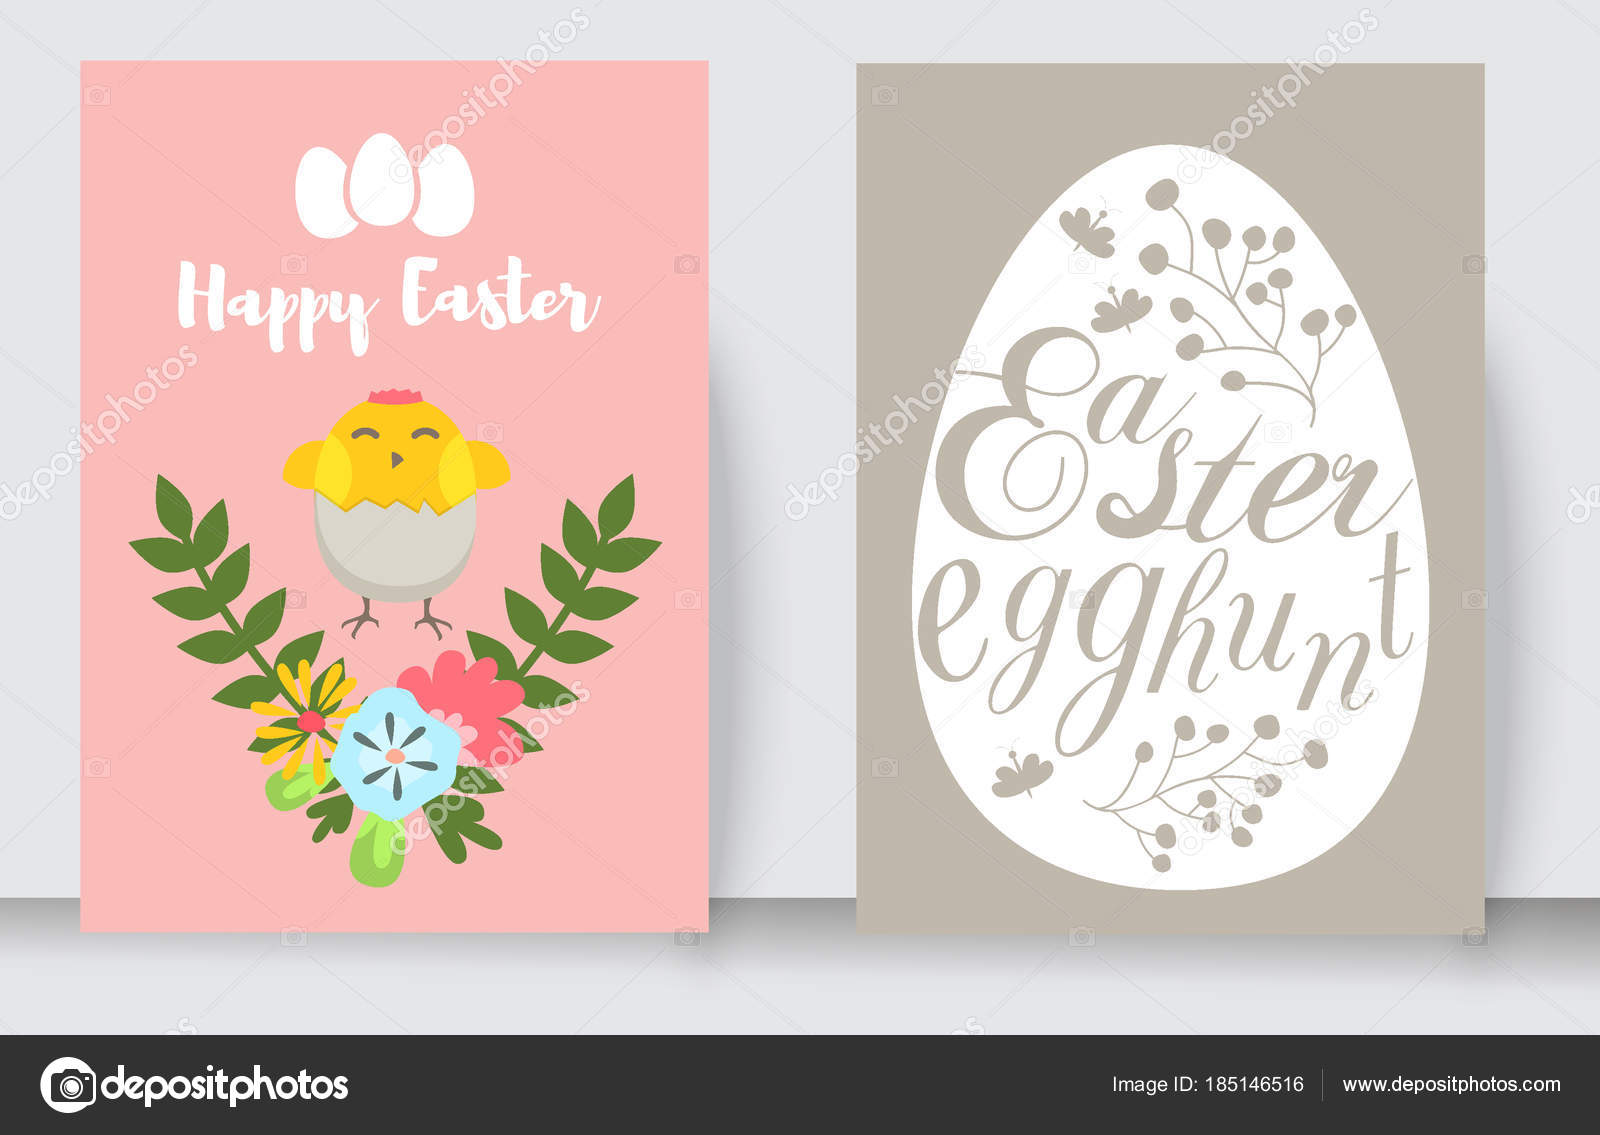 Easter cards vector cartoon characters and invitation banner design easter cards vector cartoon characters and invitation banner design holiday decoration spring celebration traditional greeting symbols m4hsunfo